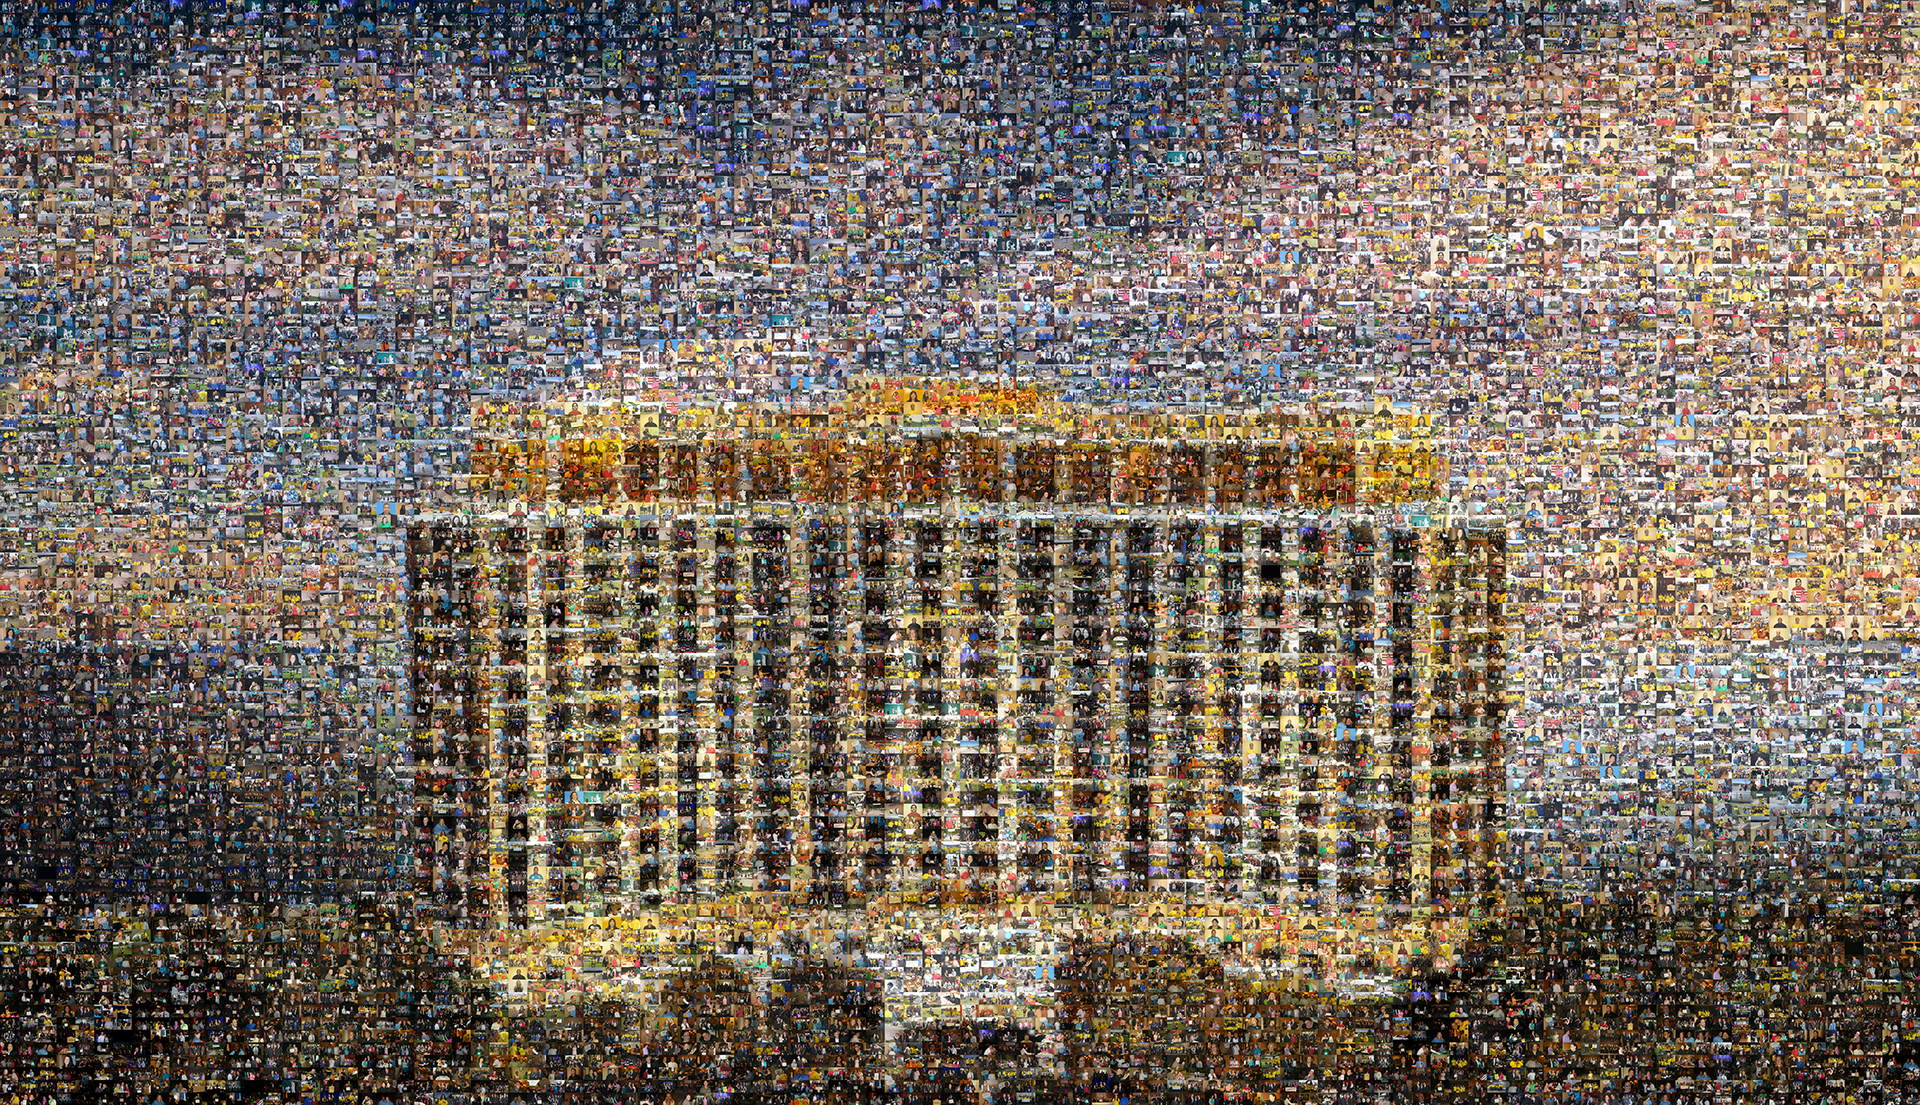 photo mosaic 1300 cells were used to create this stunning mural of the Beau Rivage Resort & Casino